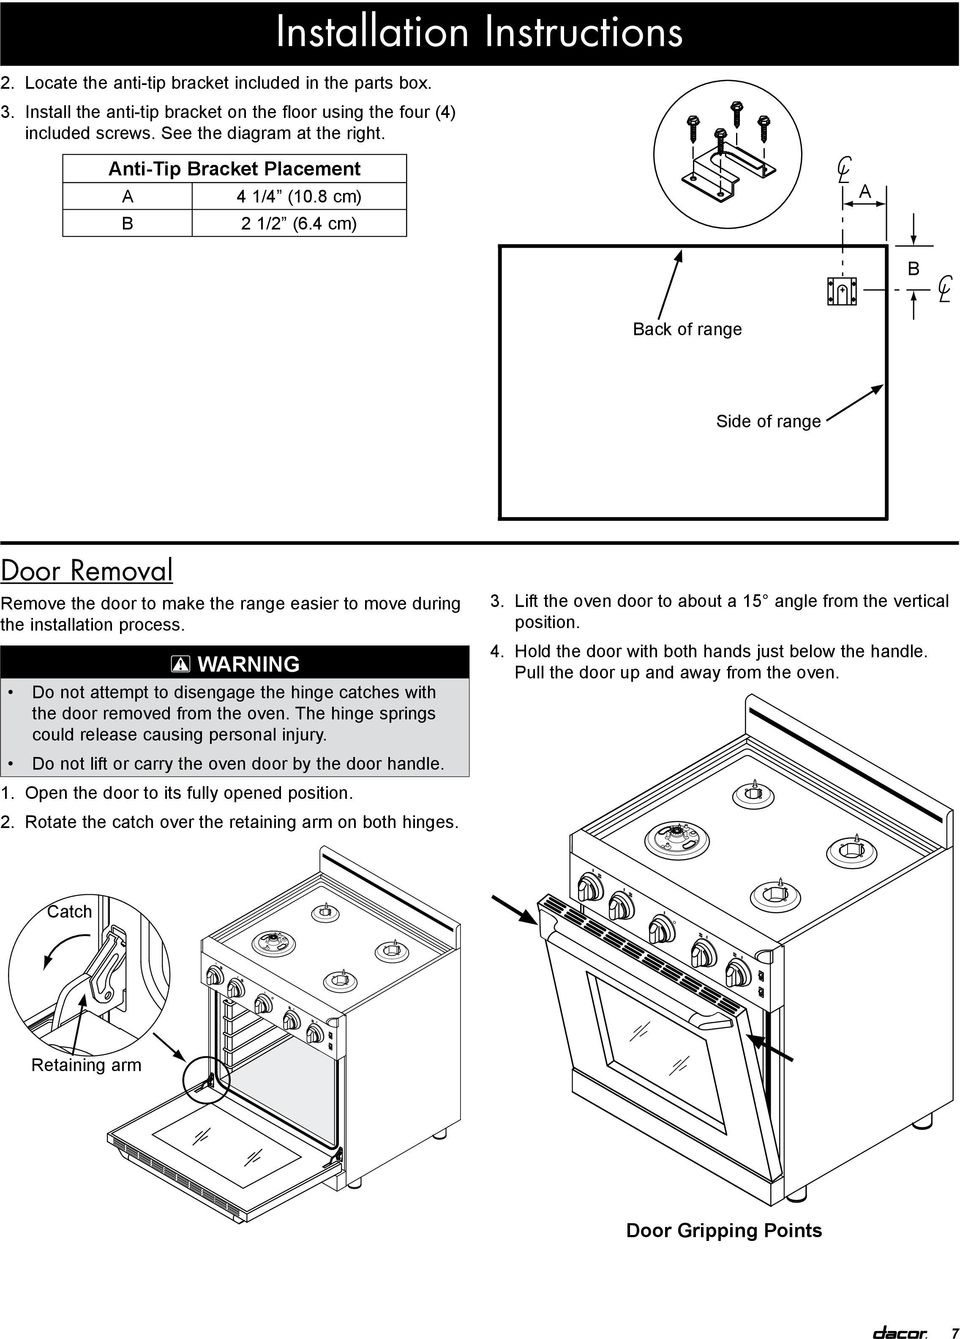 Installation Instructions Epicure 30 Inch Gas Range For Use With Continuity Tester Circuit Searscom Arning Do Not Attempt To Disengage The Hinge Catches Door Removed From Oven